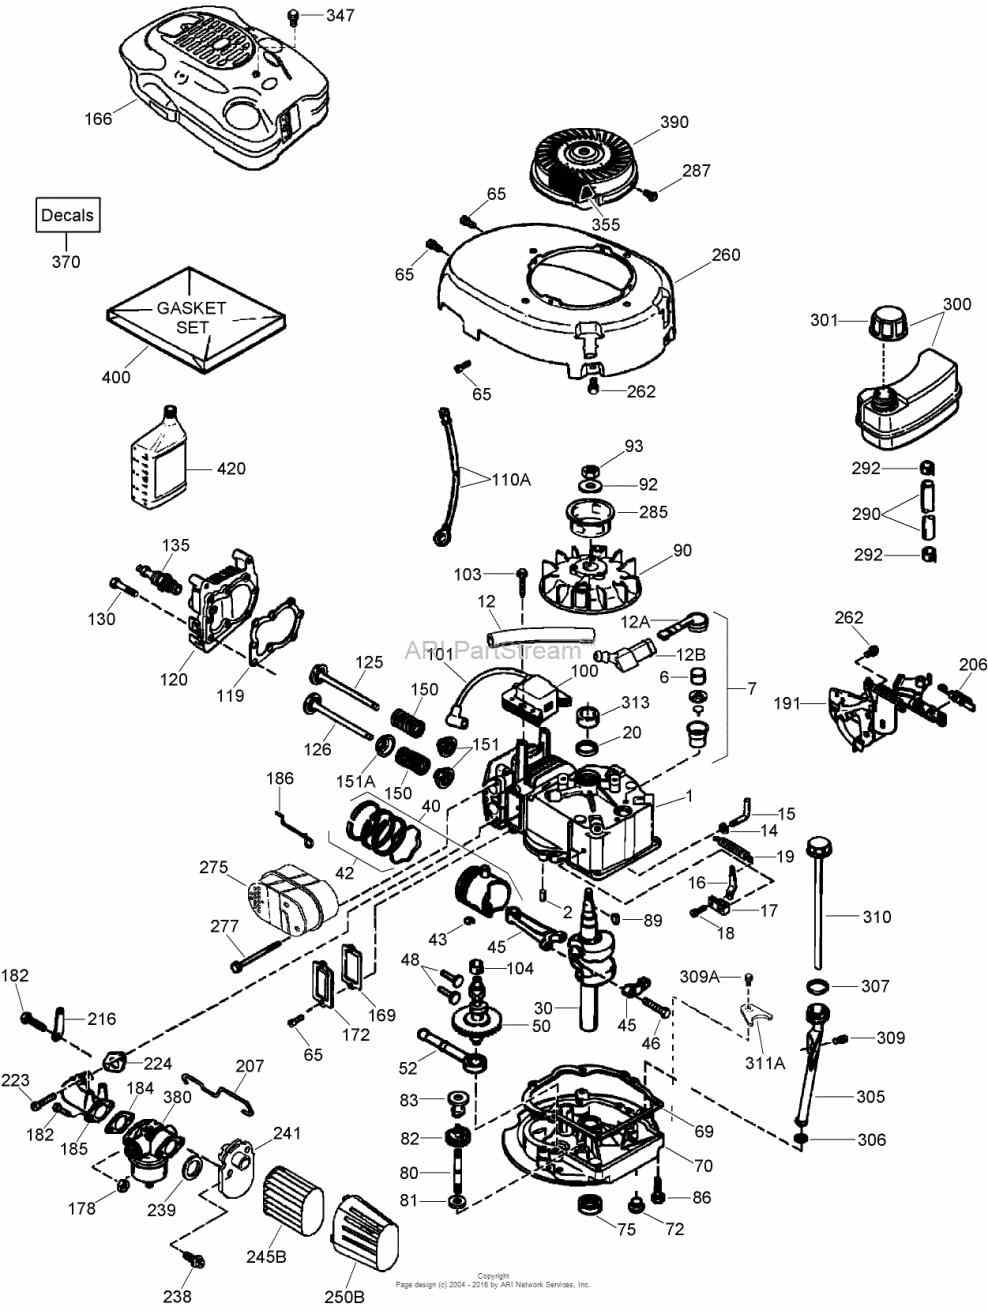 Lawn Mower Motor Diagram | Chentodayinfo inside John Deere Lawn Mower Parts Diagram